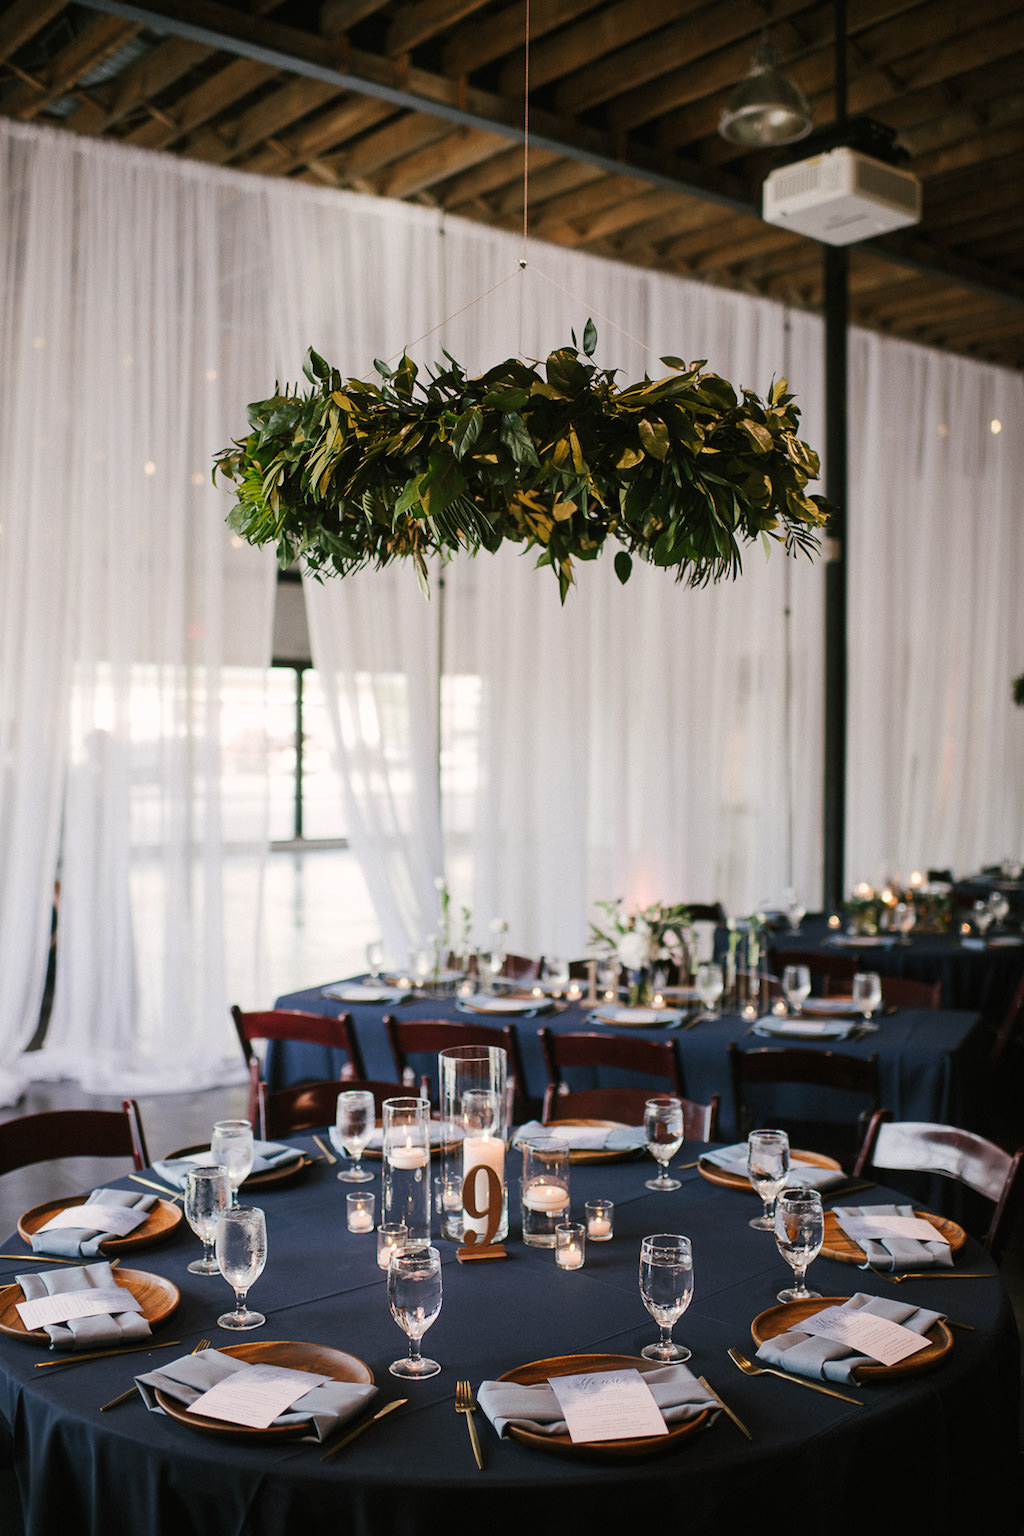 Navy Blue Wedding Reception Round Table Decor with Blue Satin Linen, Wooden Chargers, Lasercut Table Number, Floating Candles in Glass Vases, and Green Hanging Plant | Lakeland Venue Haus 820 | Tampa Bay Rentals Over the Top Linens